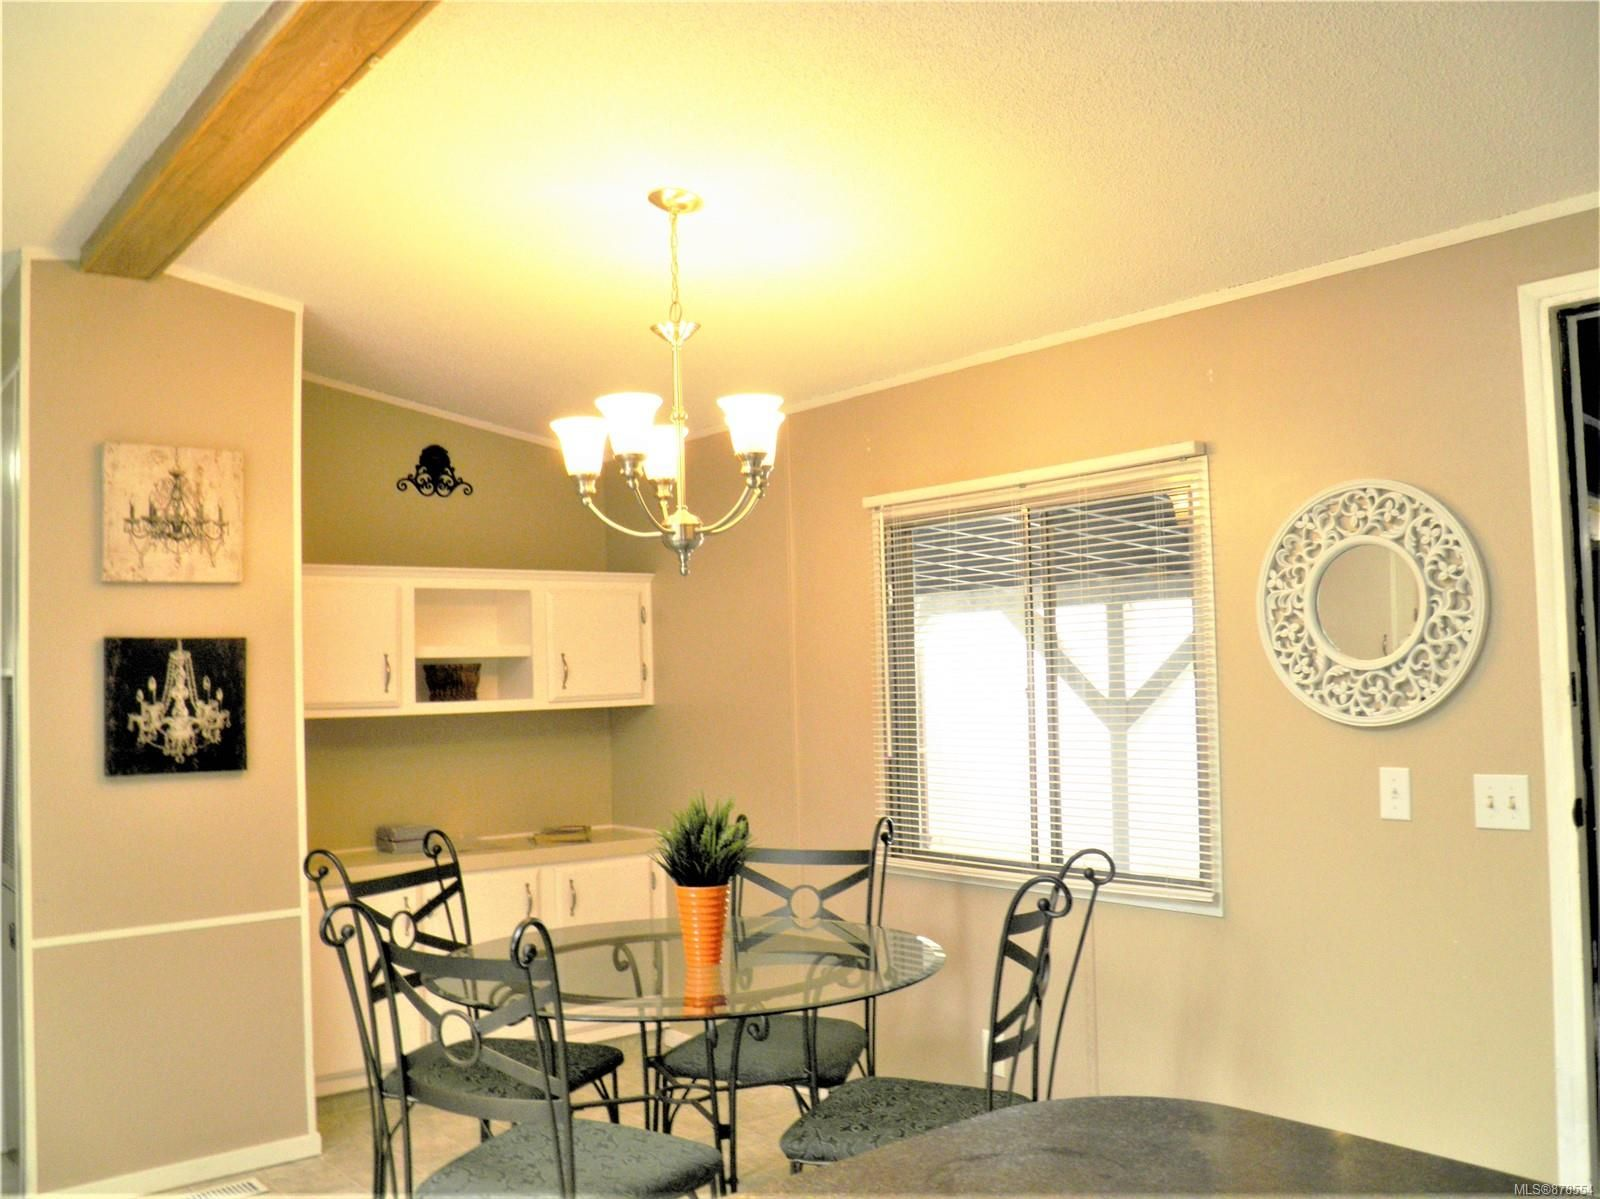 Photo 7: Photos: 56 390 Cowichan Ave in : CV Courtenay East Manufactured Home for sale (Comox Valley)  : MLS®# 878554